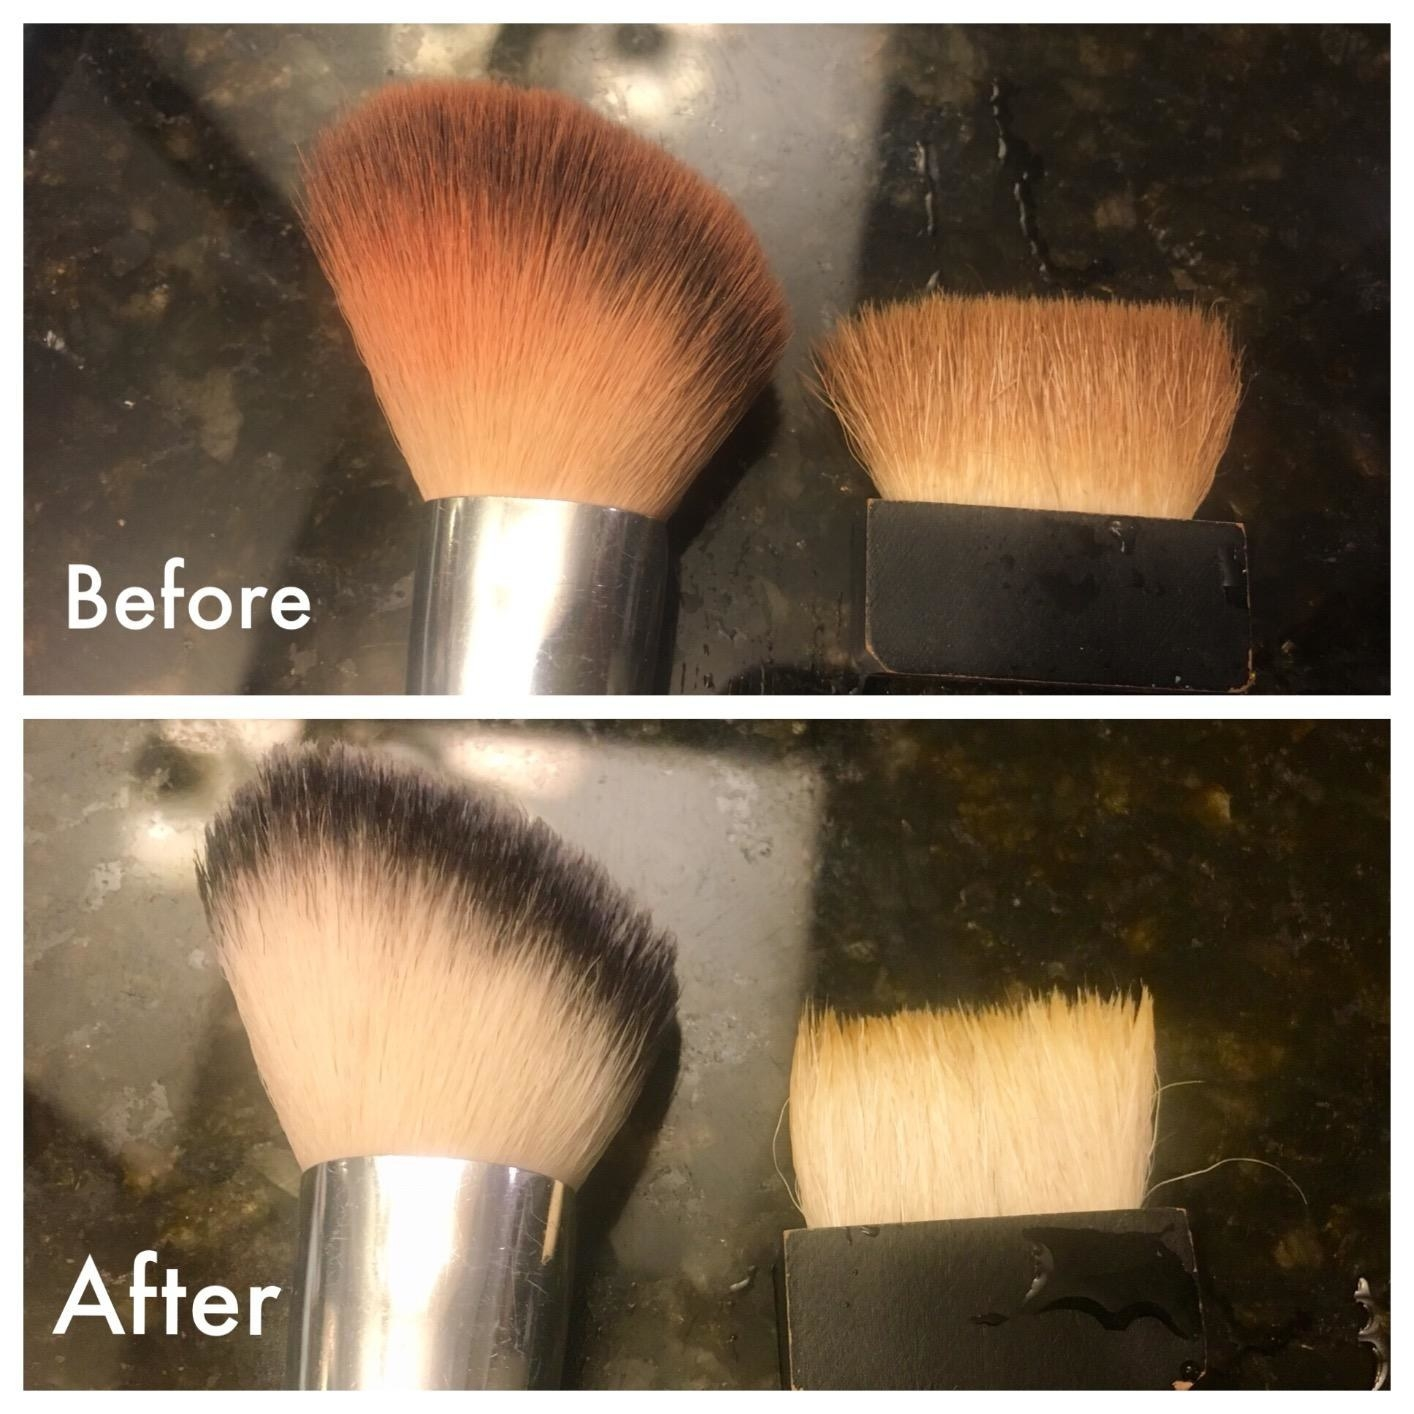 "on top a reviewer's makeup brushed stained with foundation labeled ""before"", on bottom the same brushes looking cleaner labeled ""after"""